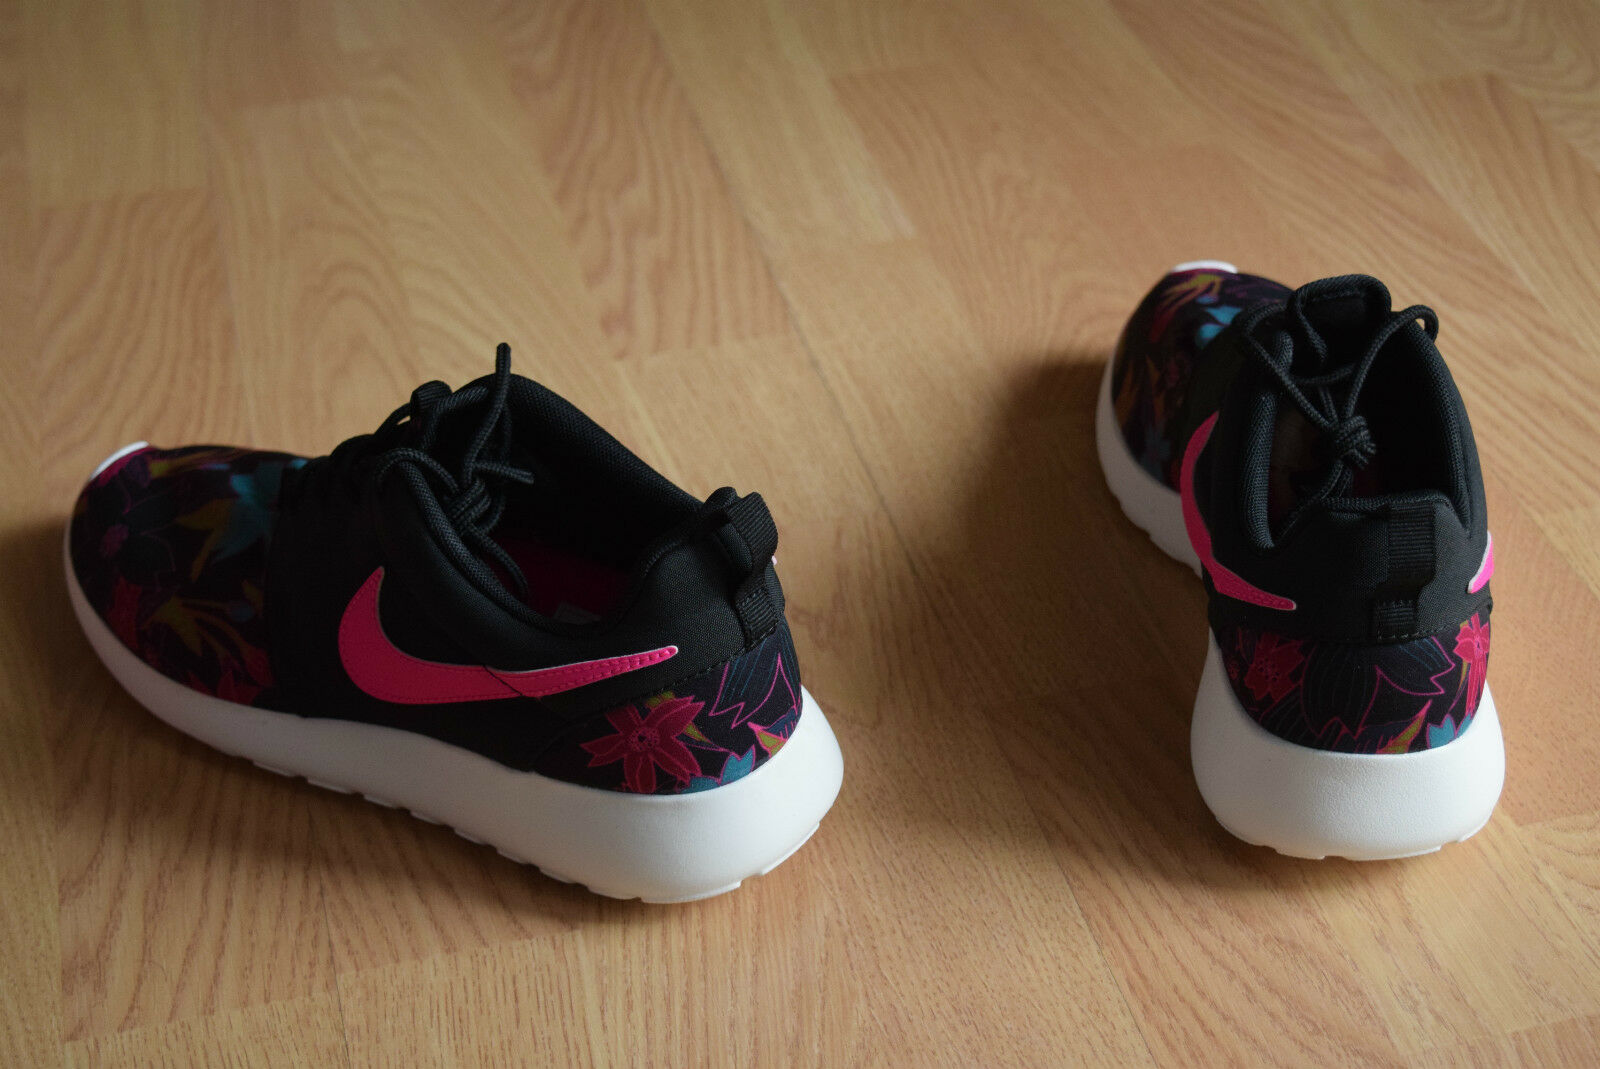 Femme nike roshe une empreinte prime 37,5 38 38,5 38,5 38,5 40 41 cours thea 90 749986 061 83f3a9